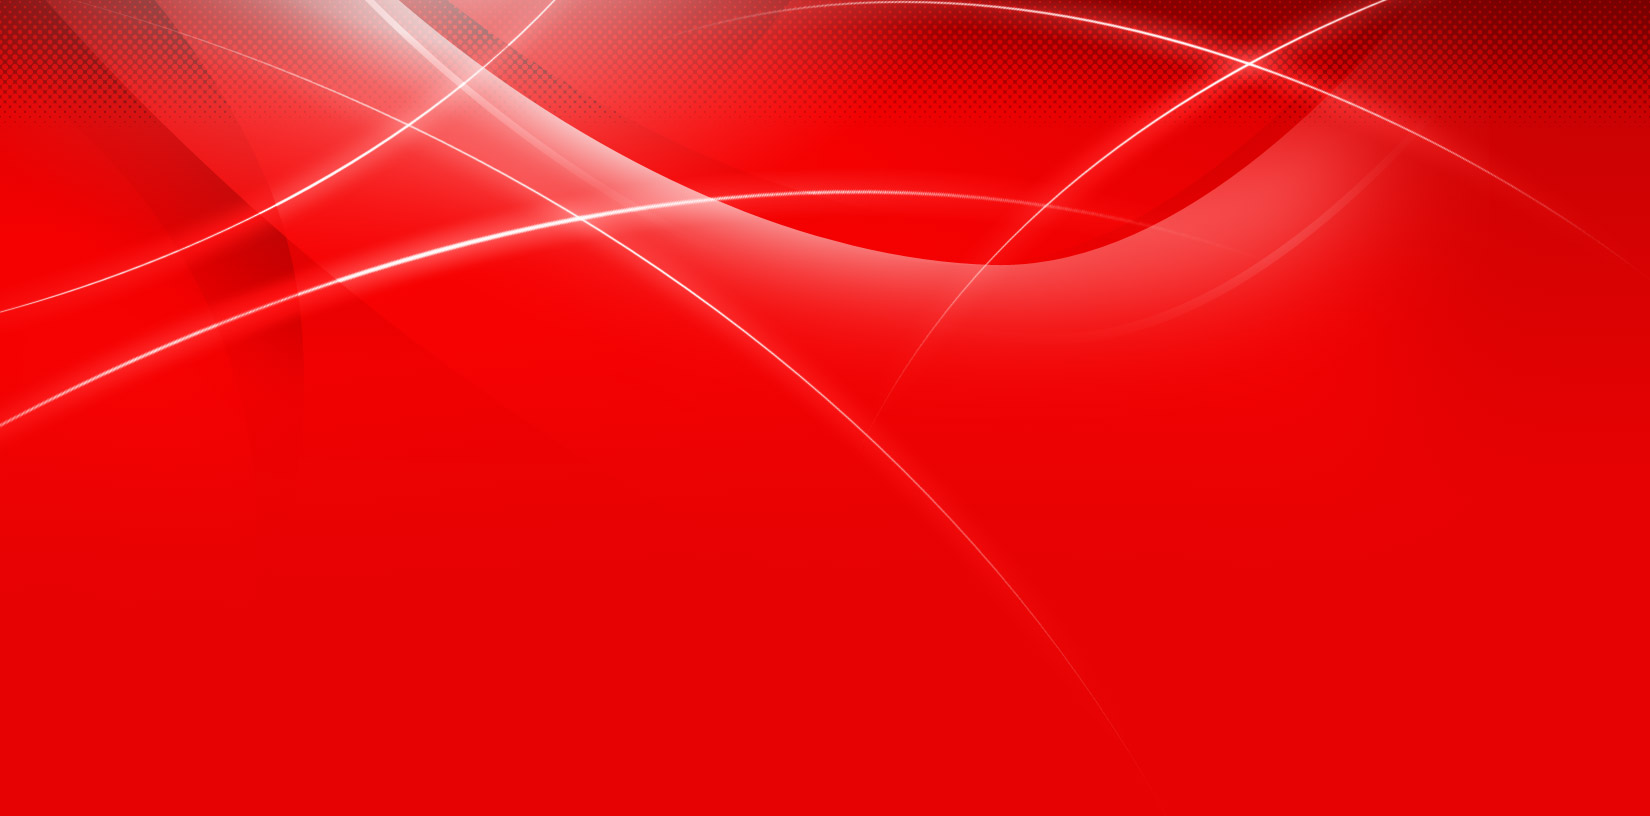 Red and white color background wallpaper for Red and white wallpaper